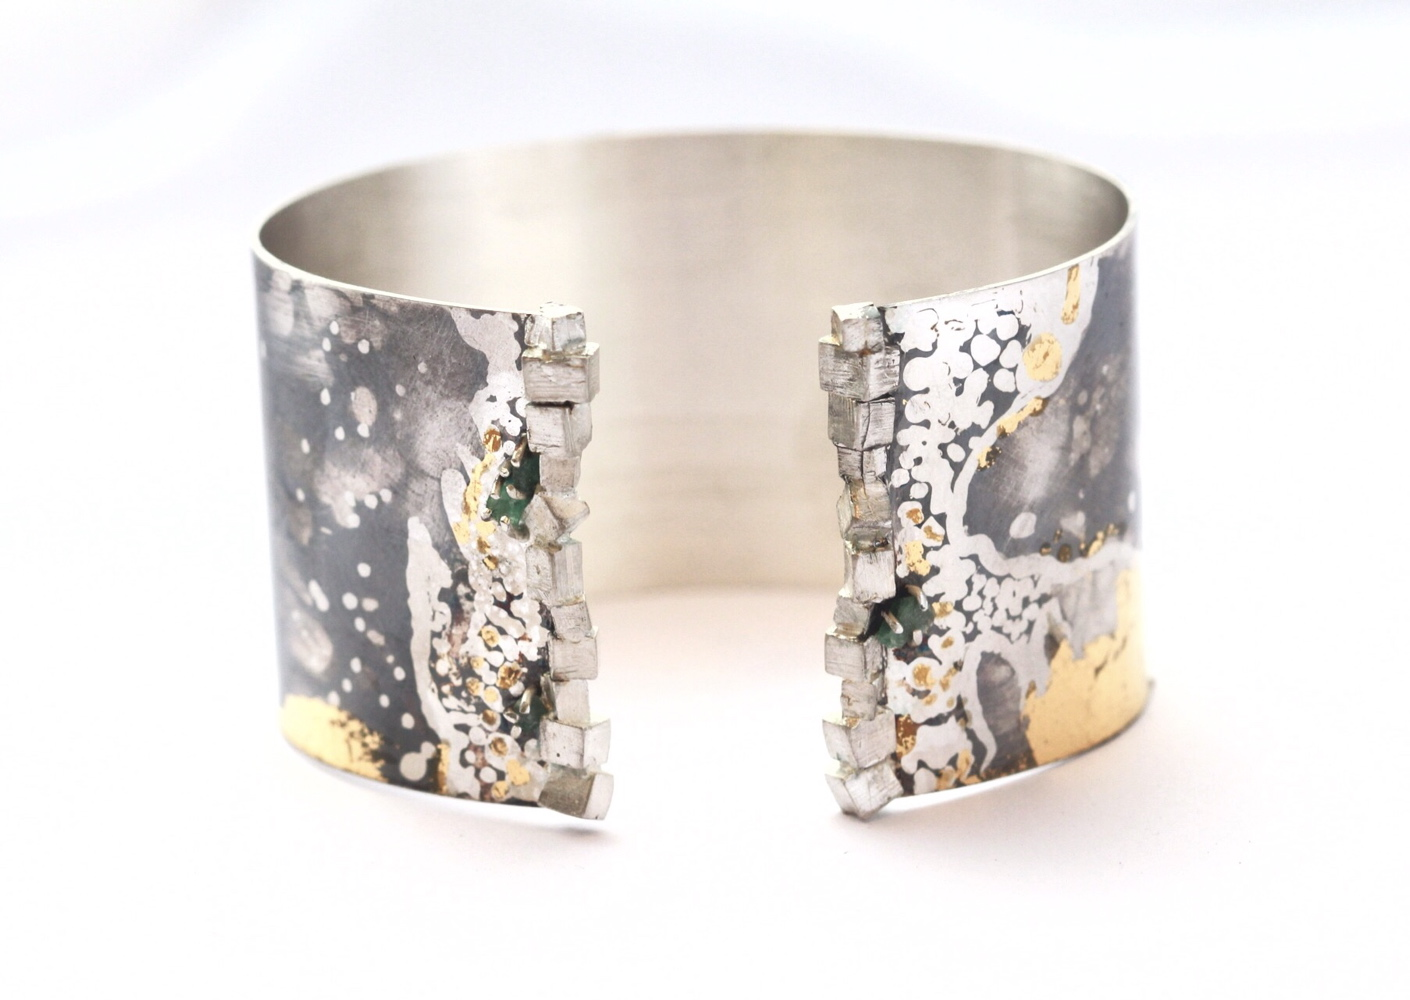 Bracelet Habachtal collection rough emerald. Artistar jewels